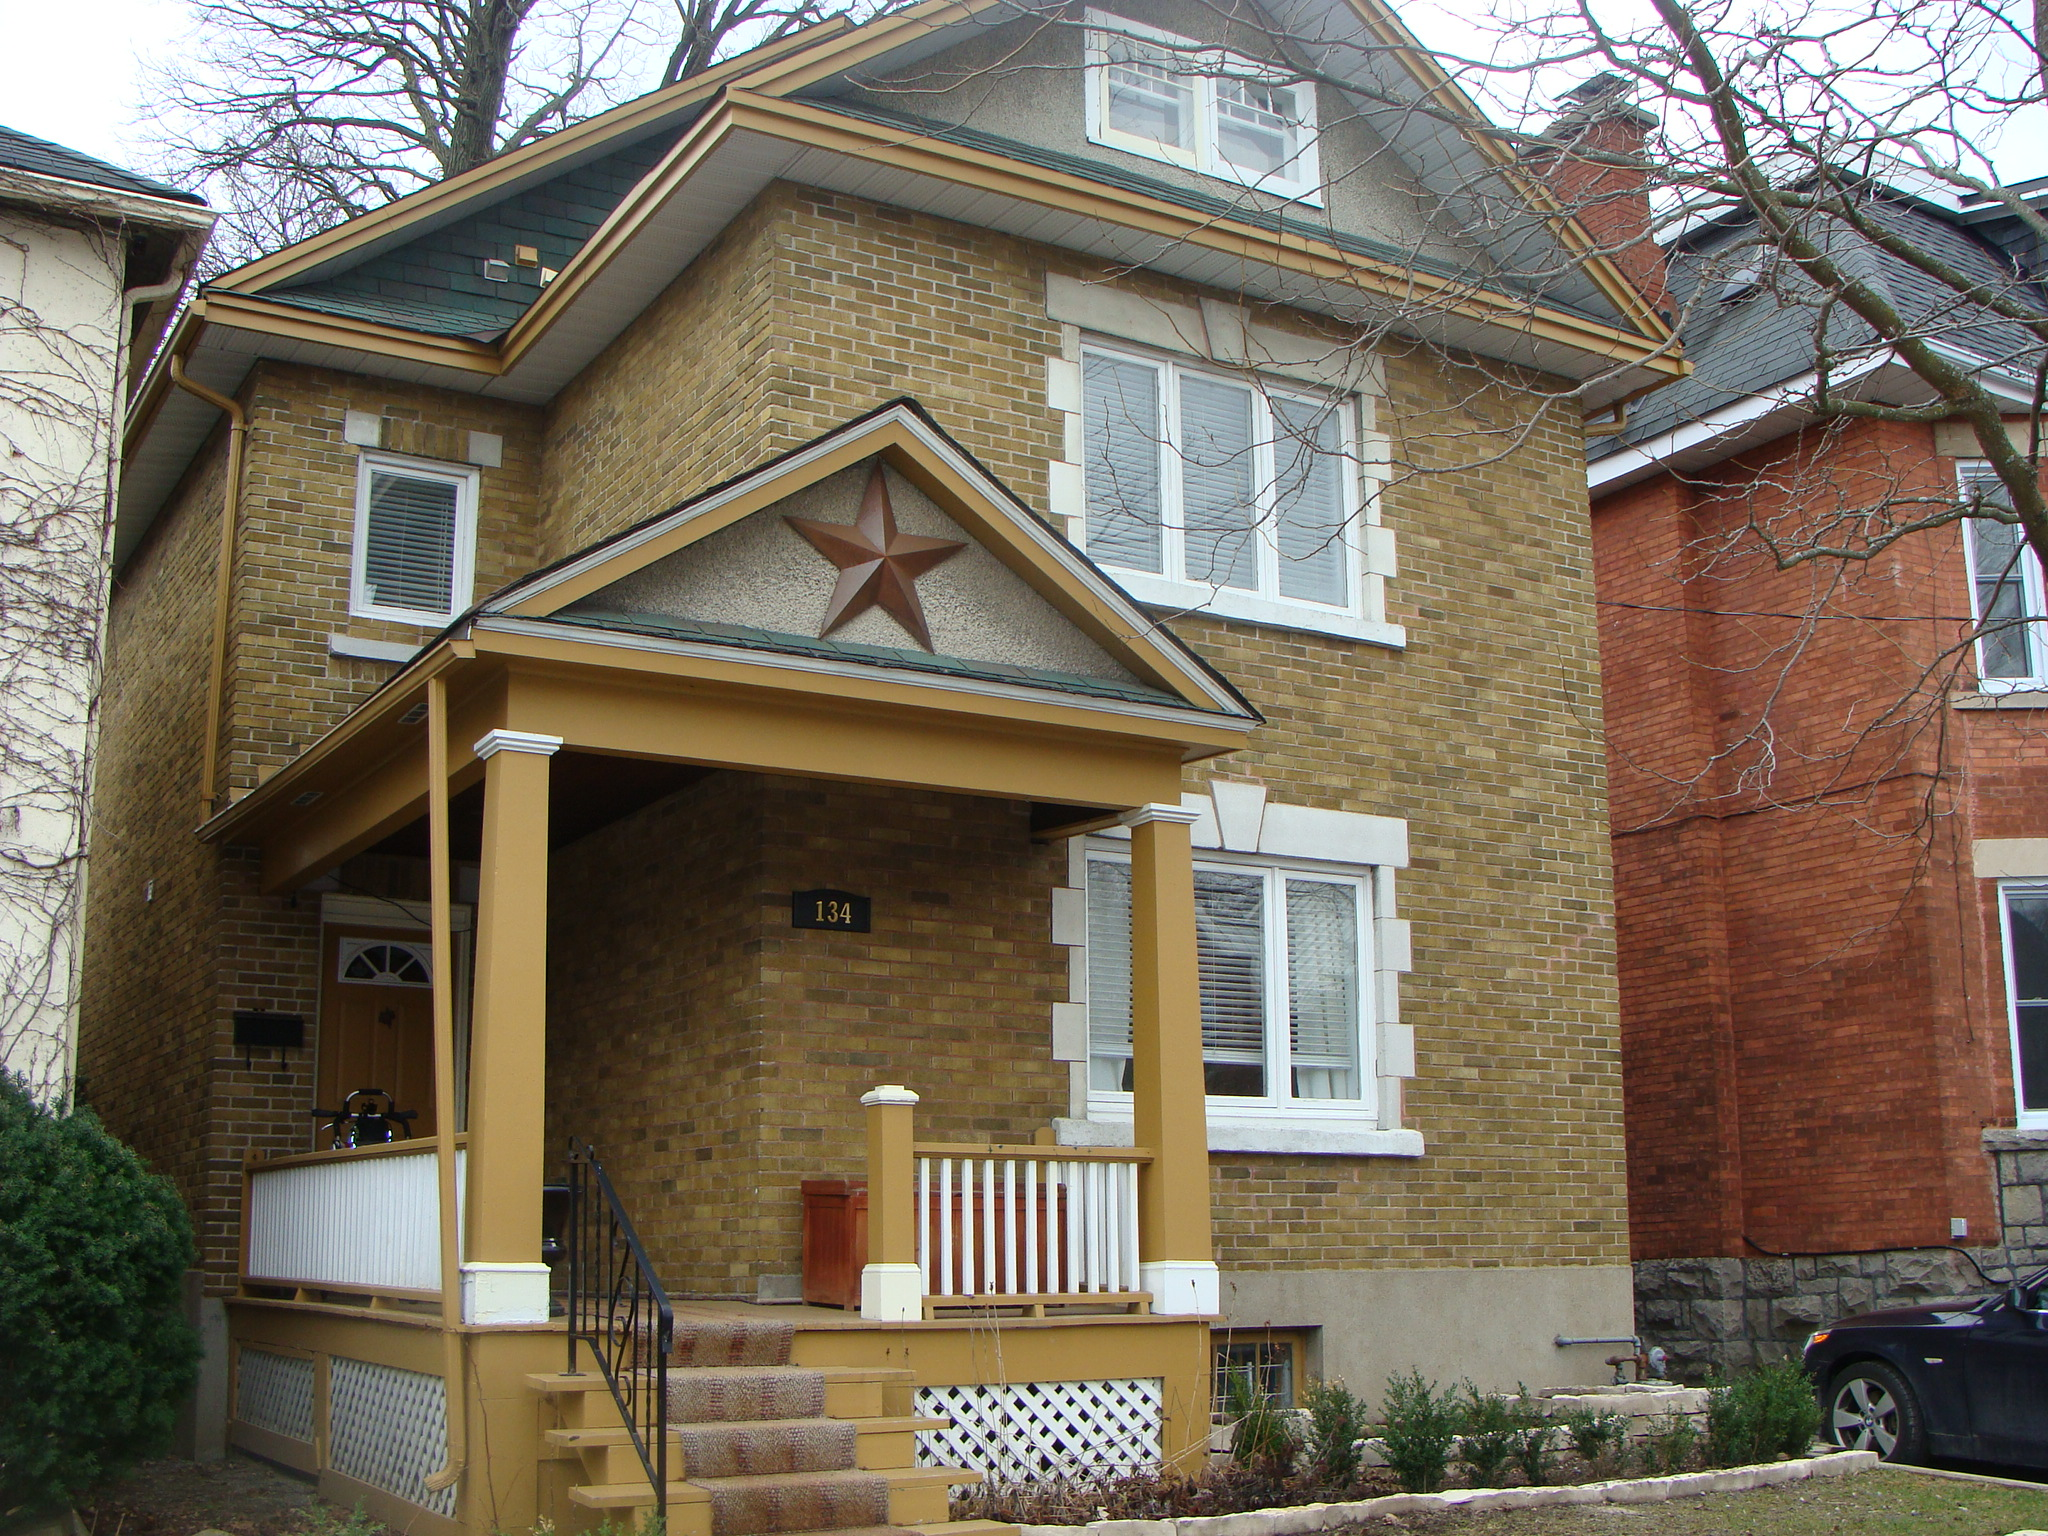 134 Brighton Ave. - Old Ottawa South Short Term Lease 4-6 Months